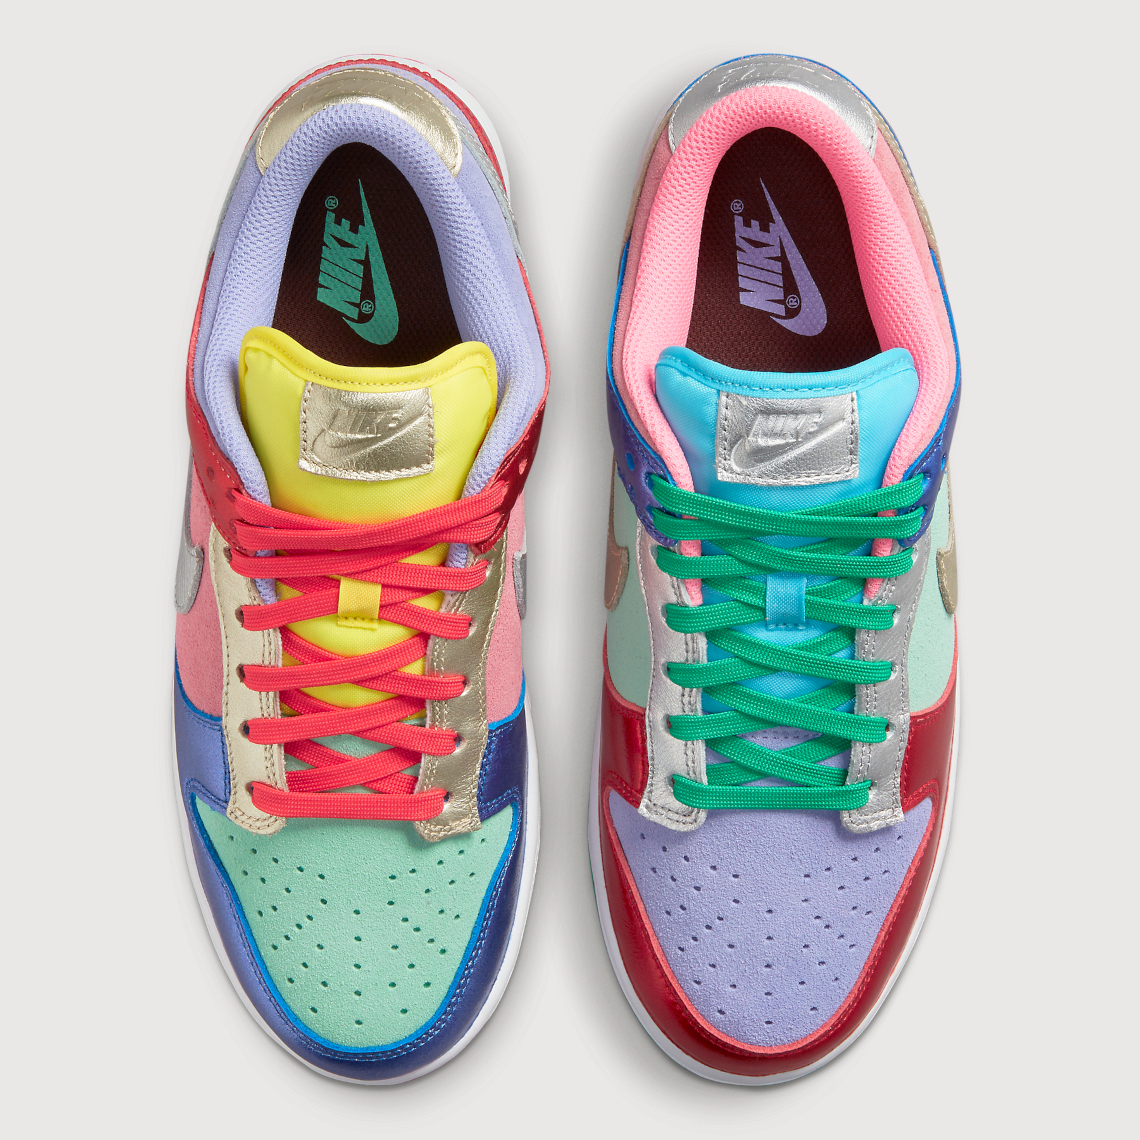 Nike Dunk Low ''Sunset Pulse'' - DN0855-600